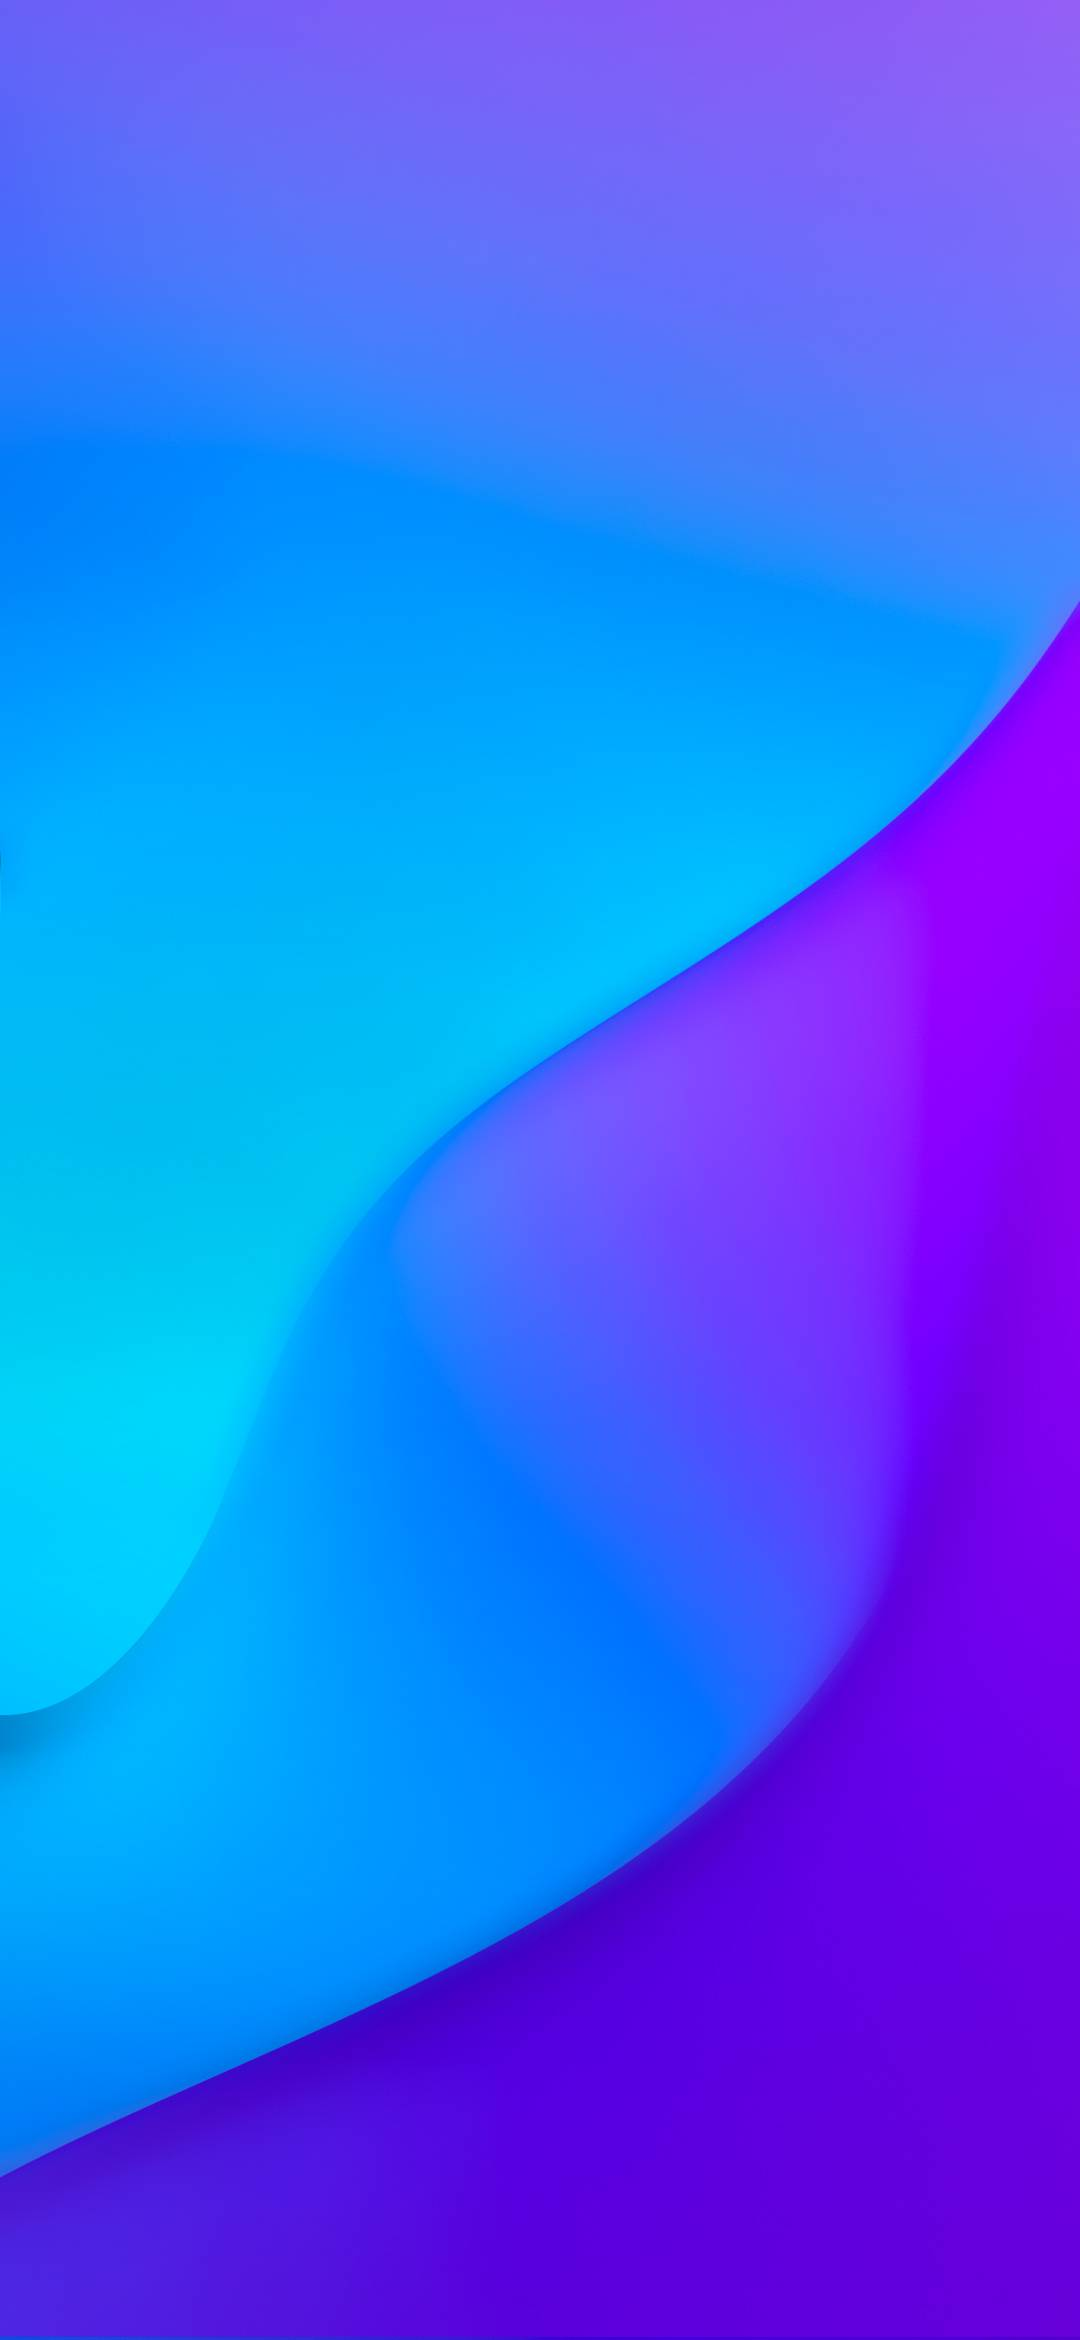 Vivo V11 Pro Stock Wallpaper Download ✓ The Best HD Wallpaper